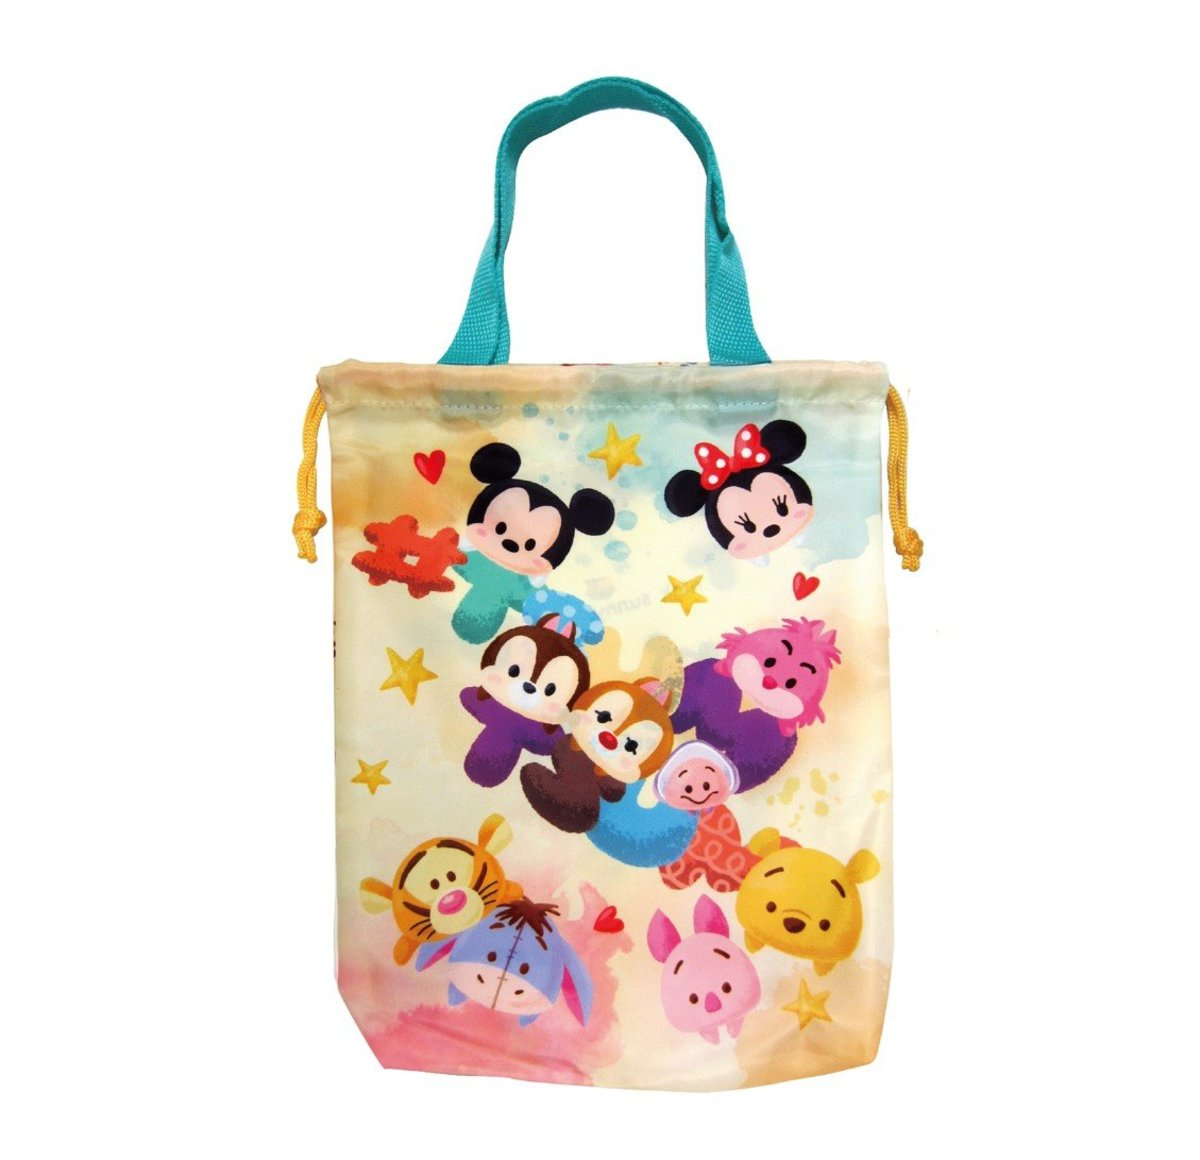 Disney迪士尼 -- Drawstring bag (Licensed by Disney)